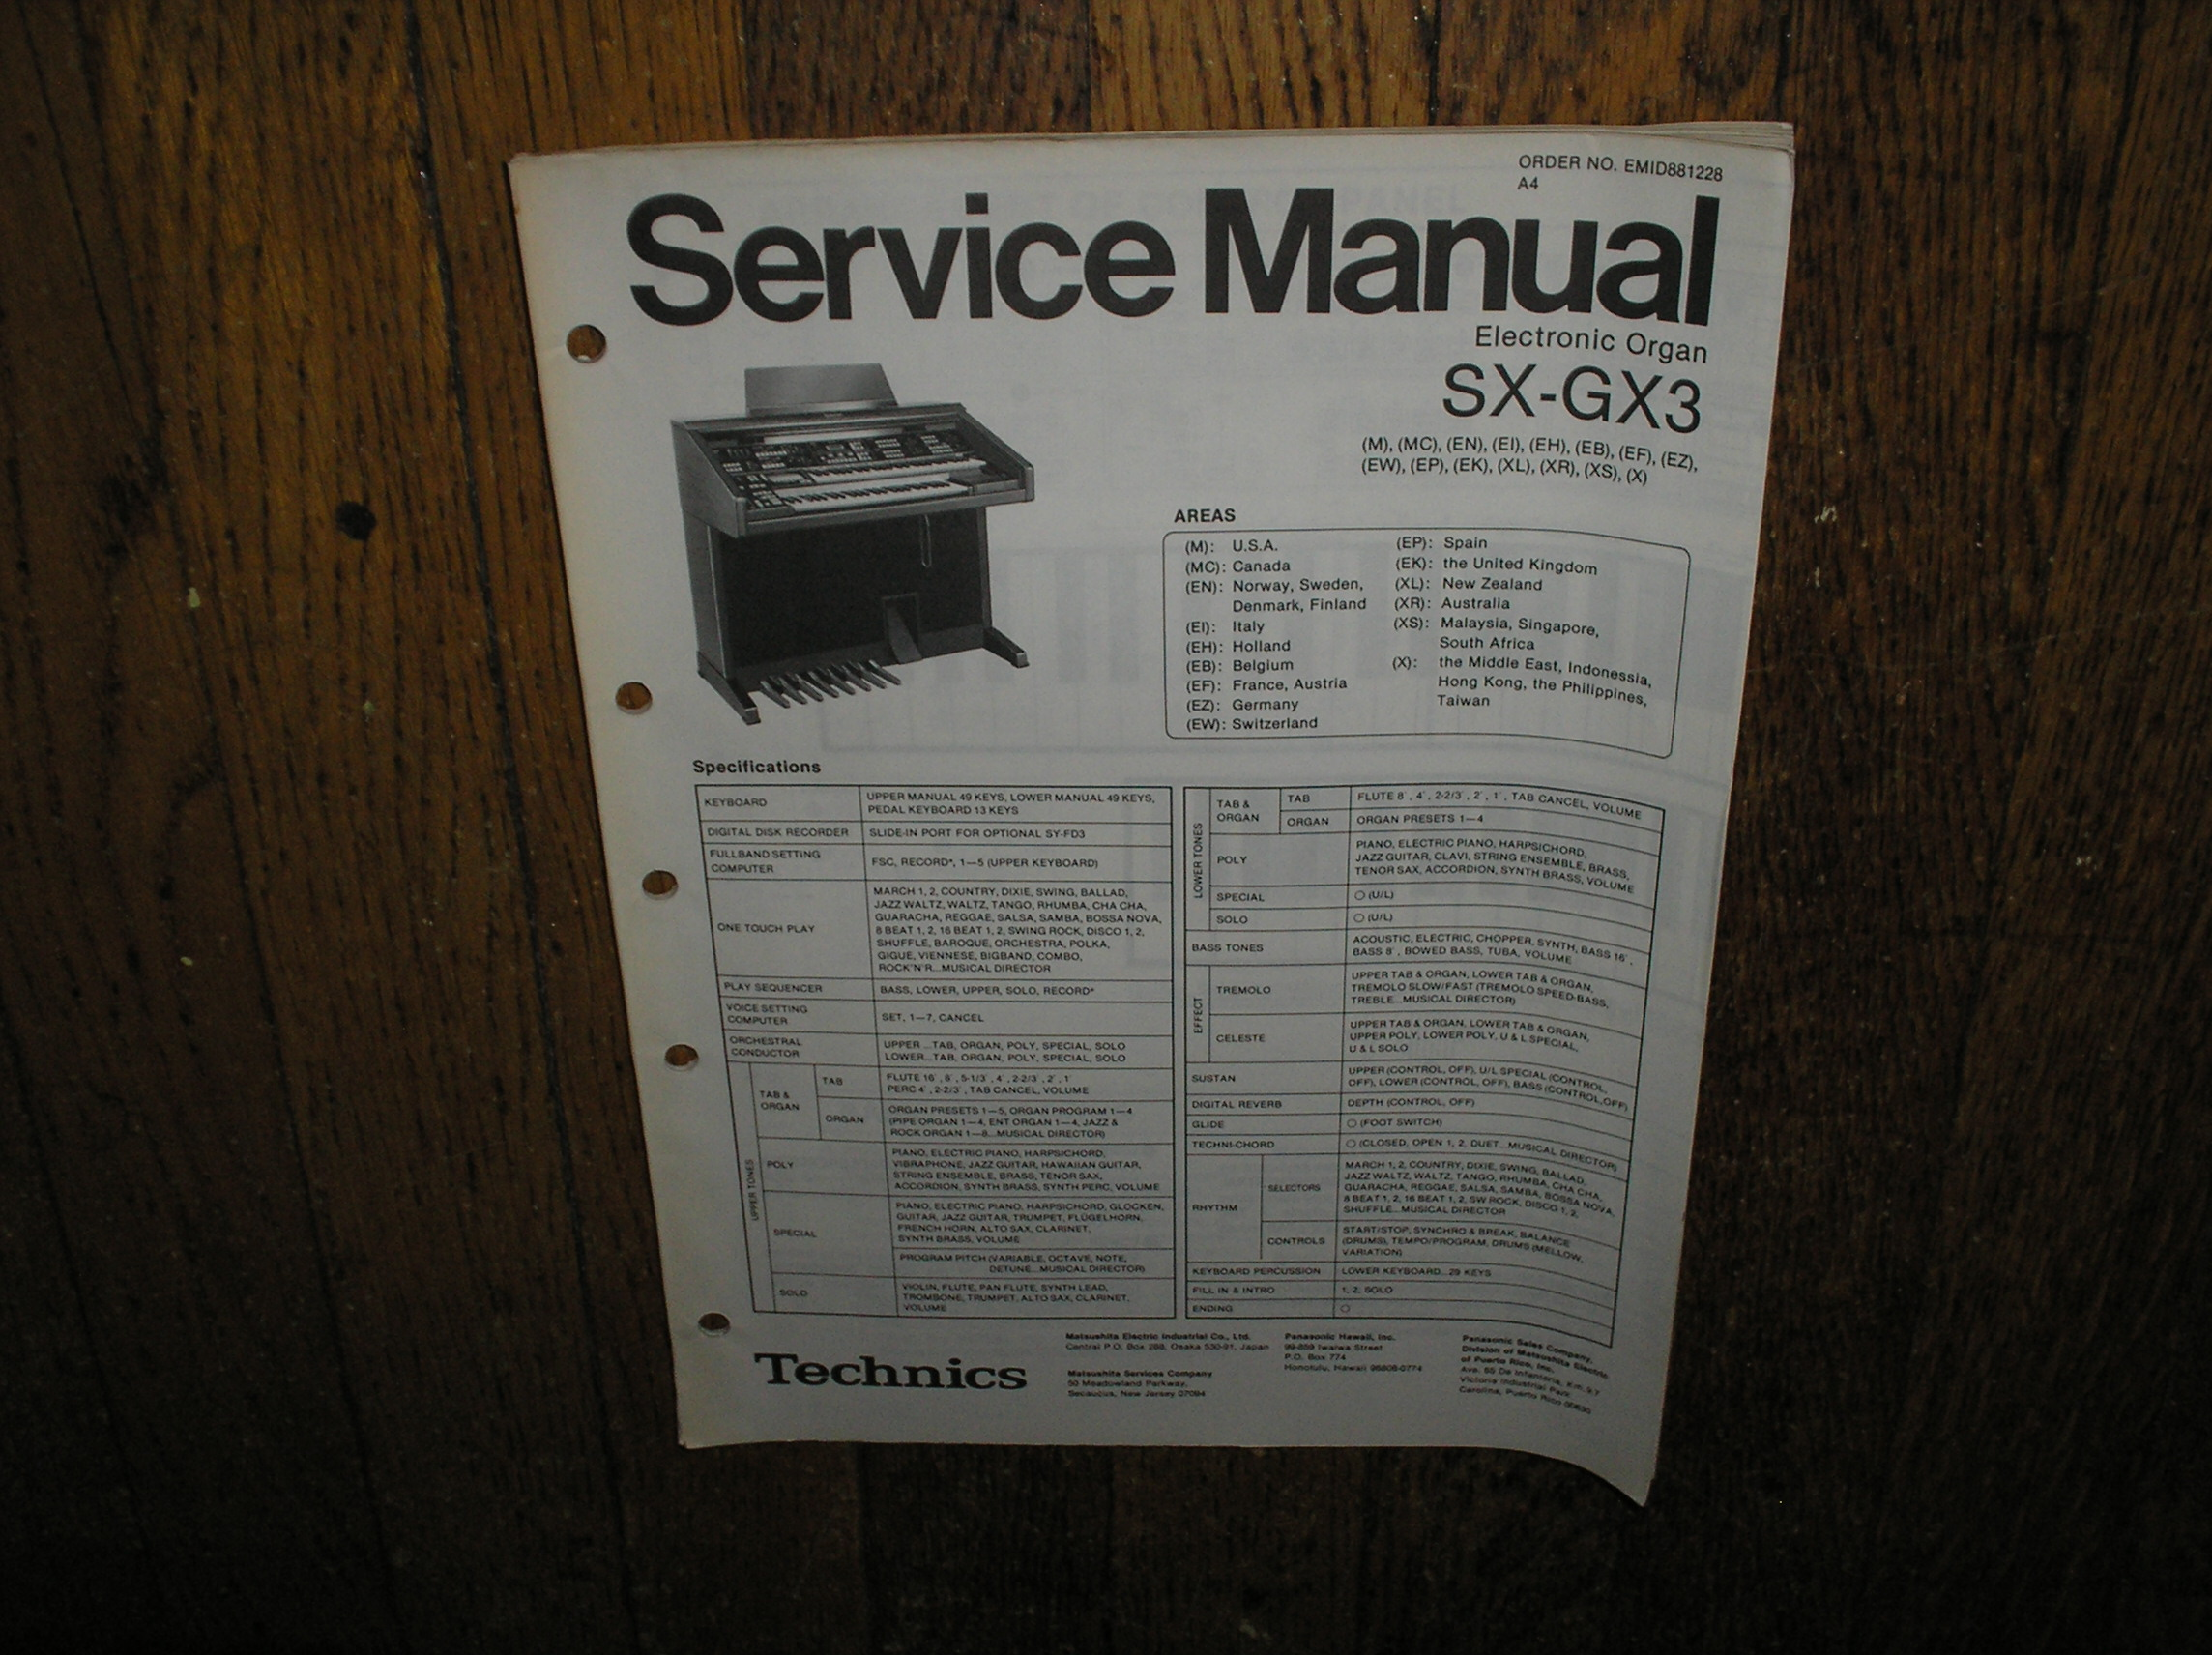 SX-GX3 Electric Organ Service Manual